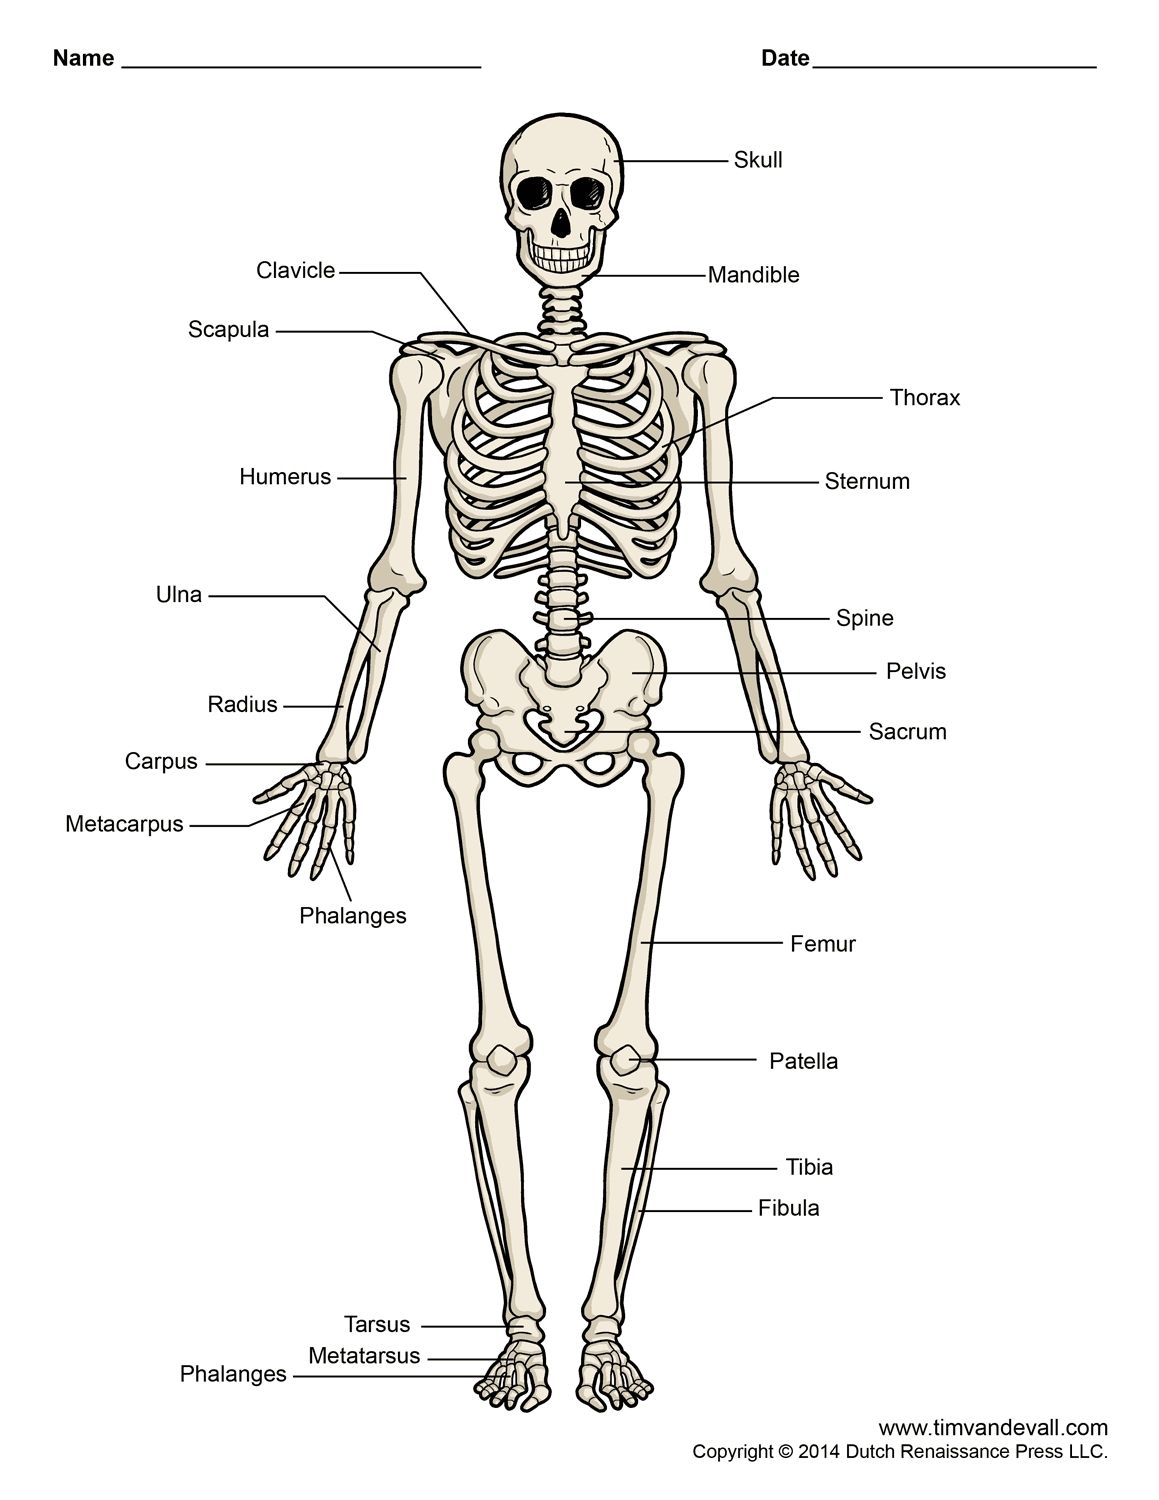 medium resolution of diagram of human skeleton labeled printable human skeleton diagram rh pinterest com unlabeled human skeleton diagram back printable human skeleton diagram